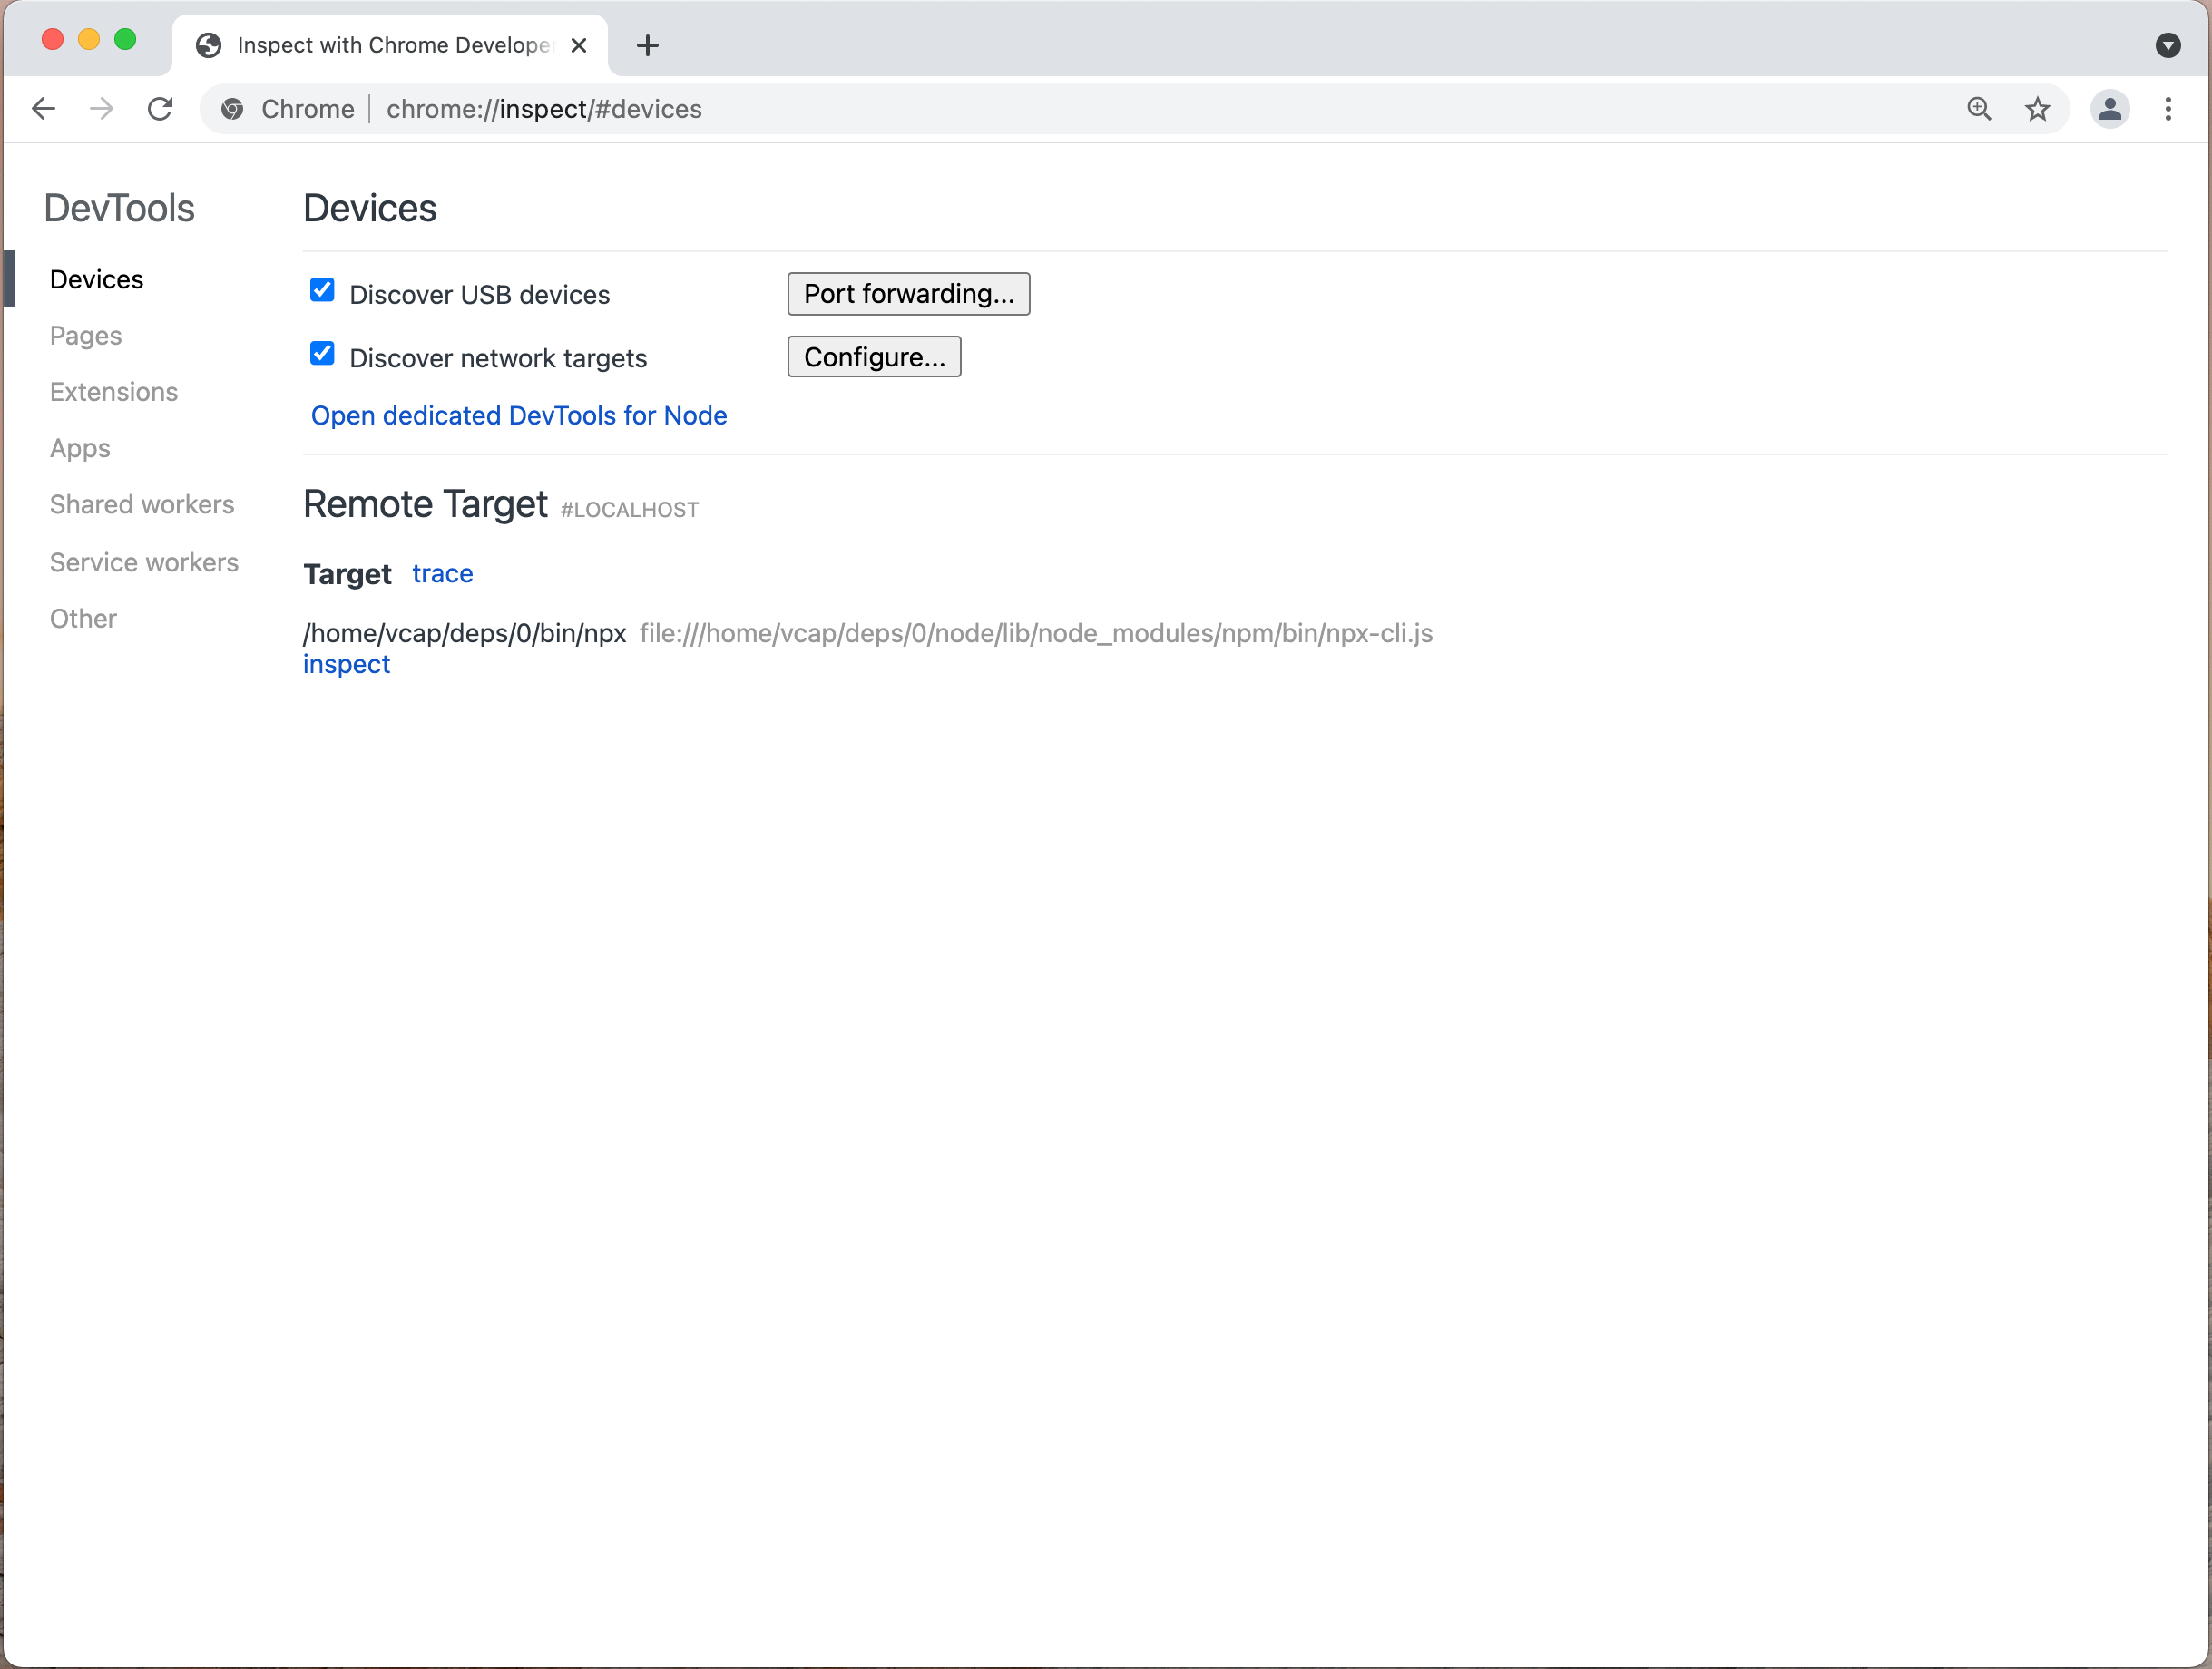 Chrome Browser Window (Inspect Devices Screen)